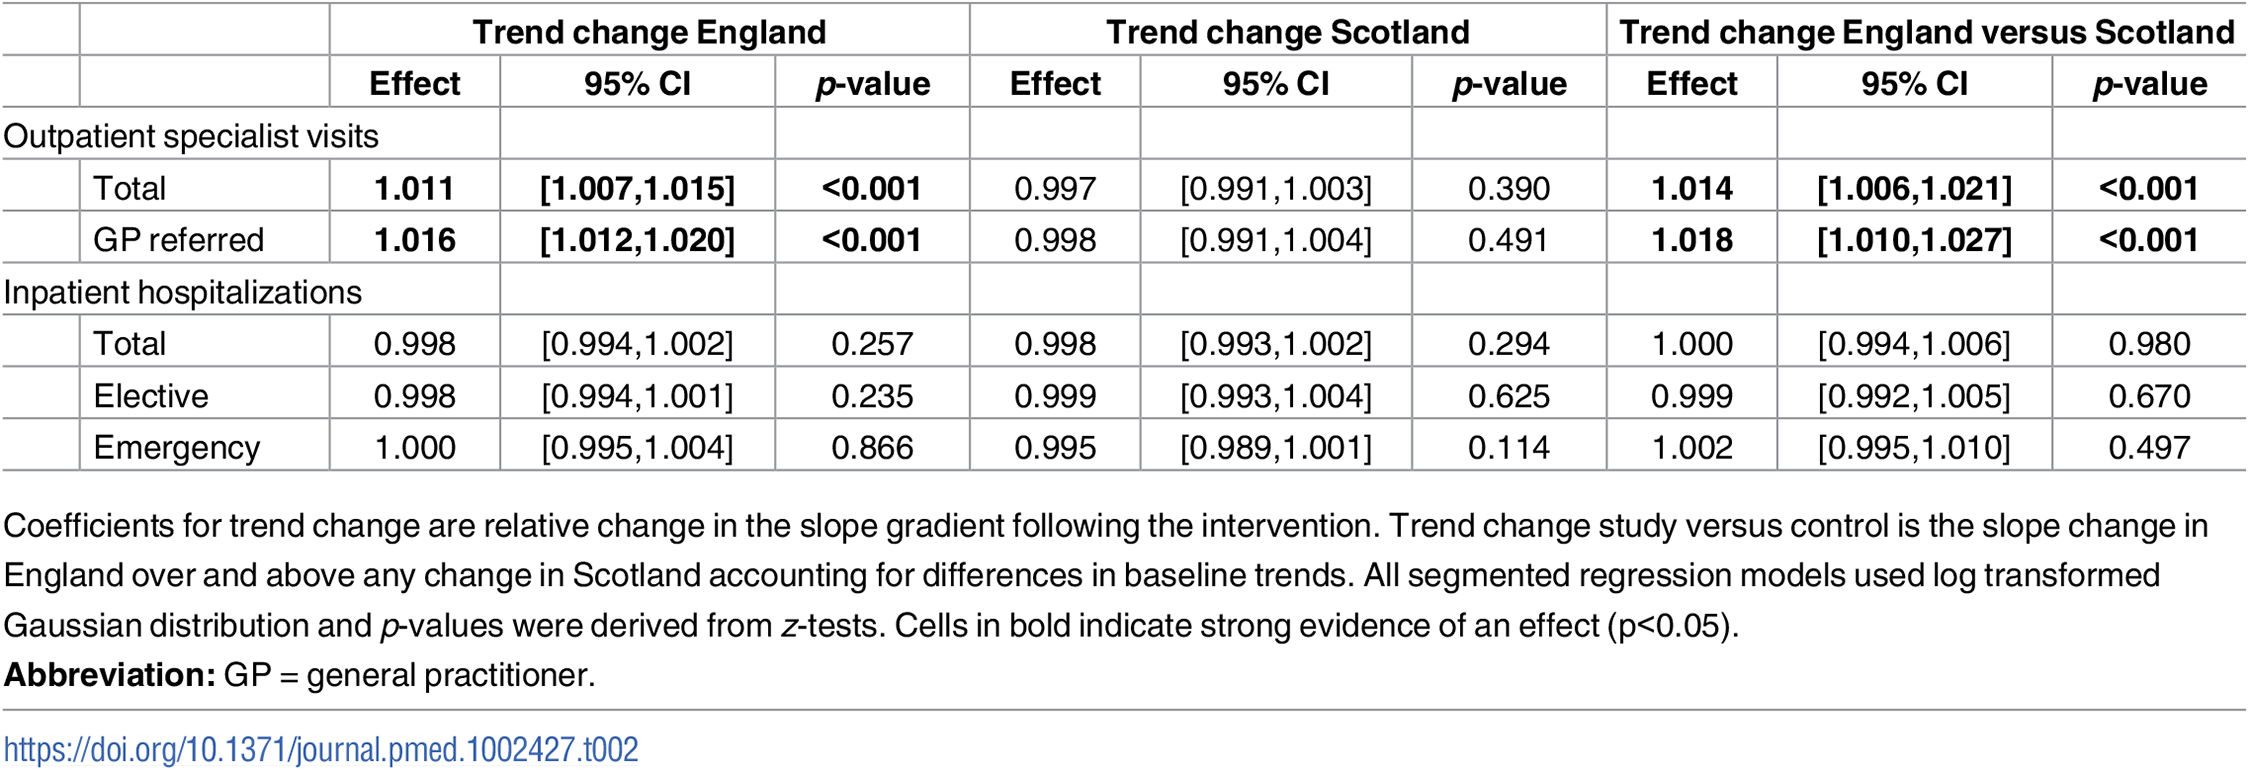 Changes in trend in specialist visits and hospitalisations following the intervention.